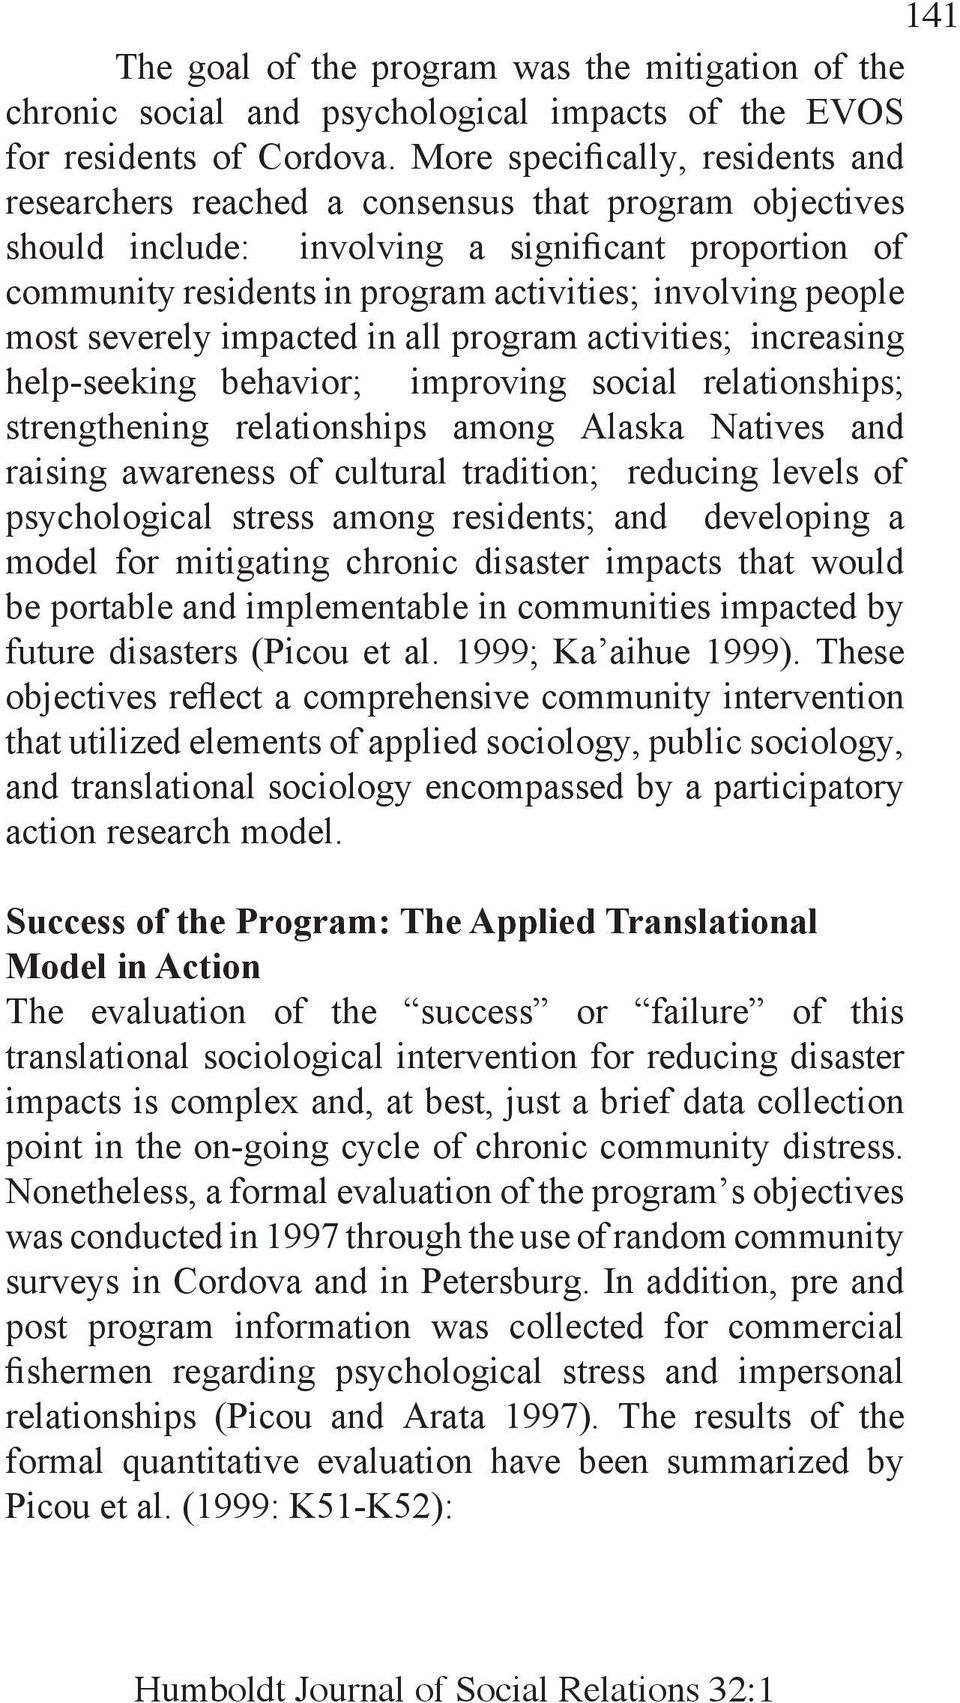 people most severely impacted in all program activities; increasing help-seeking behavior; improving social relationships; strengthening relationships among Alaska Natives and raising awareness of